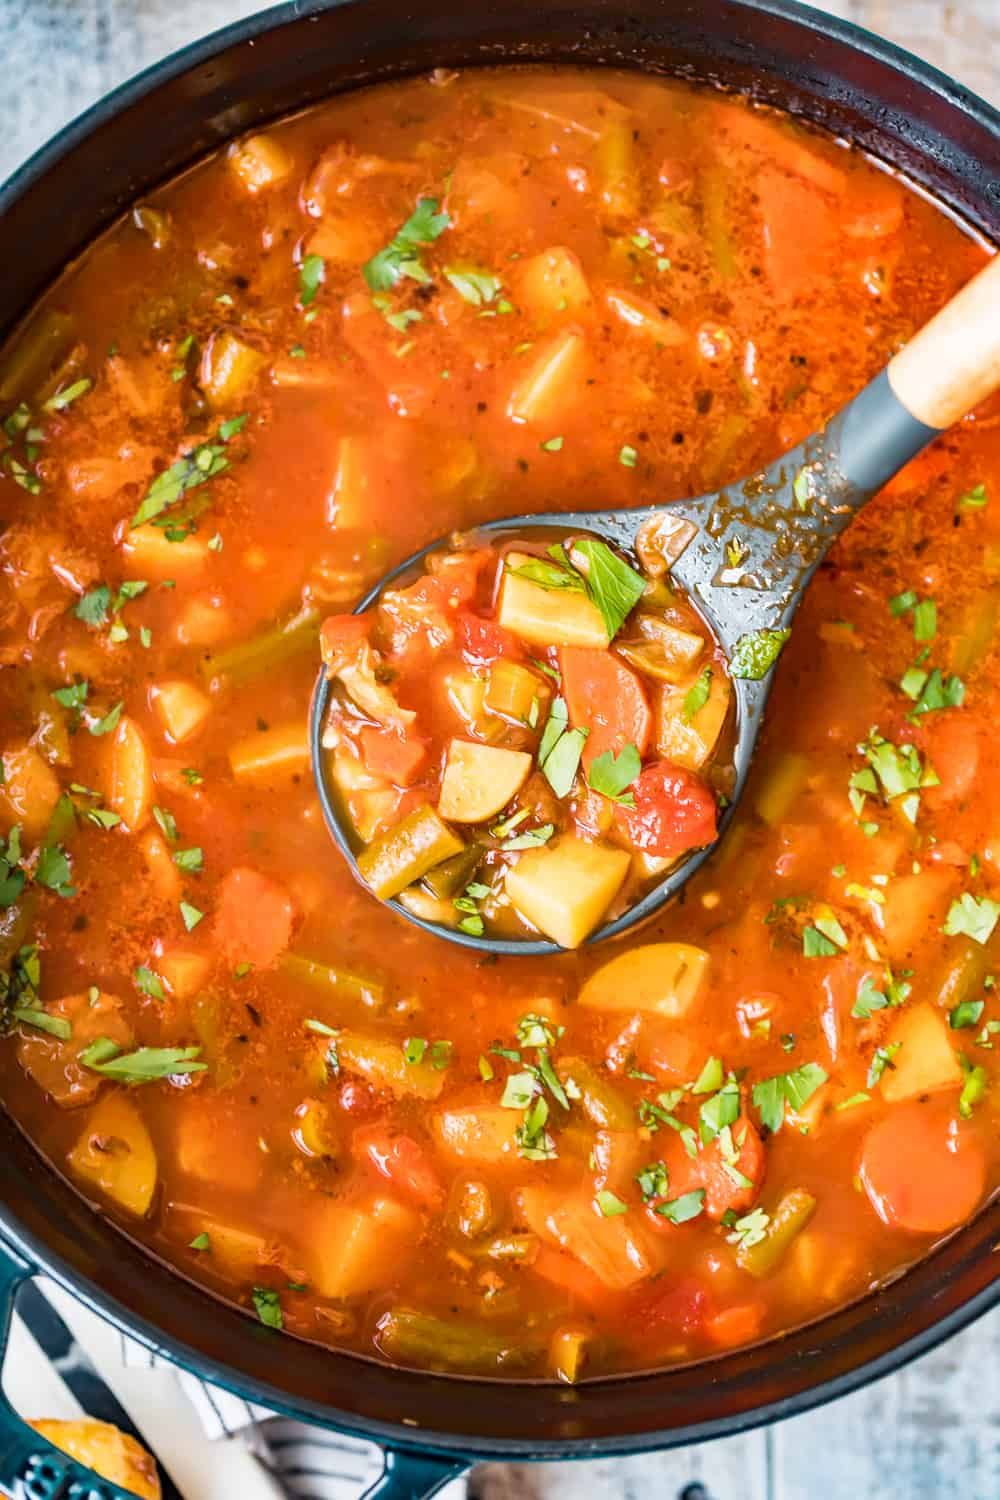 spoonful of hearty vegetable soup